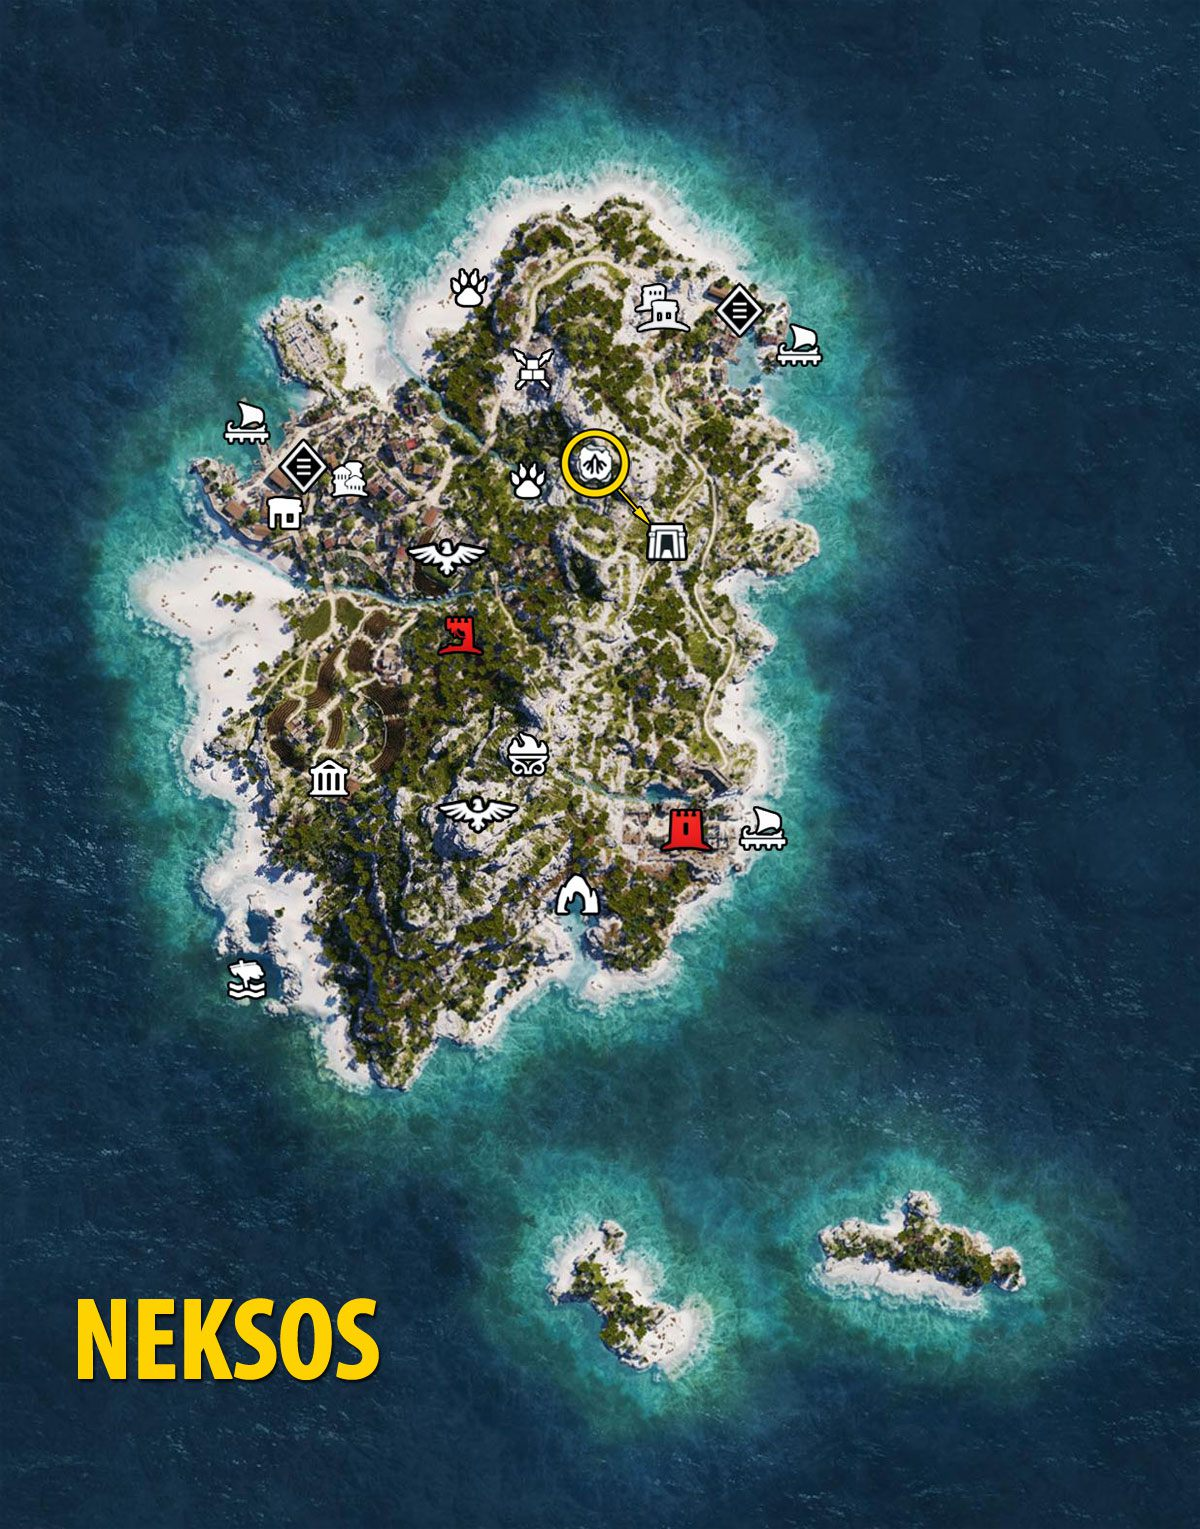 Ac Odyssey Interactive Map : odyssey, interactive, Odyssey:, Naxos, Tombs,, Ostracons,, Documents,, Secrets, Assassin's, Creed, Odyssey, Guide, Gamepressure.com